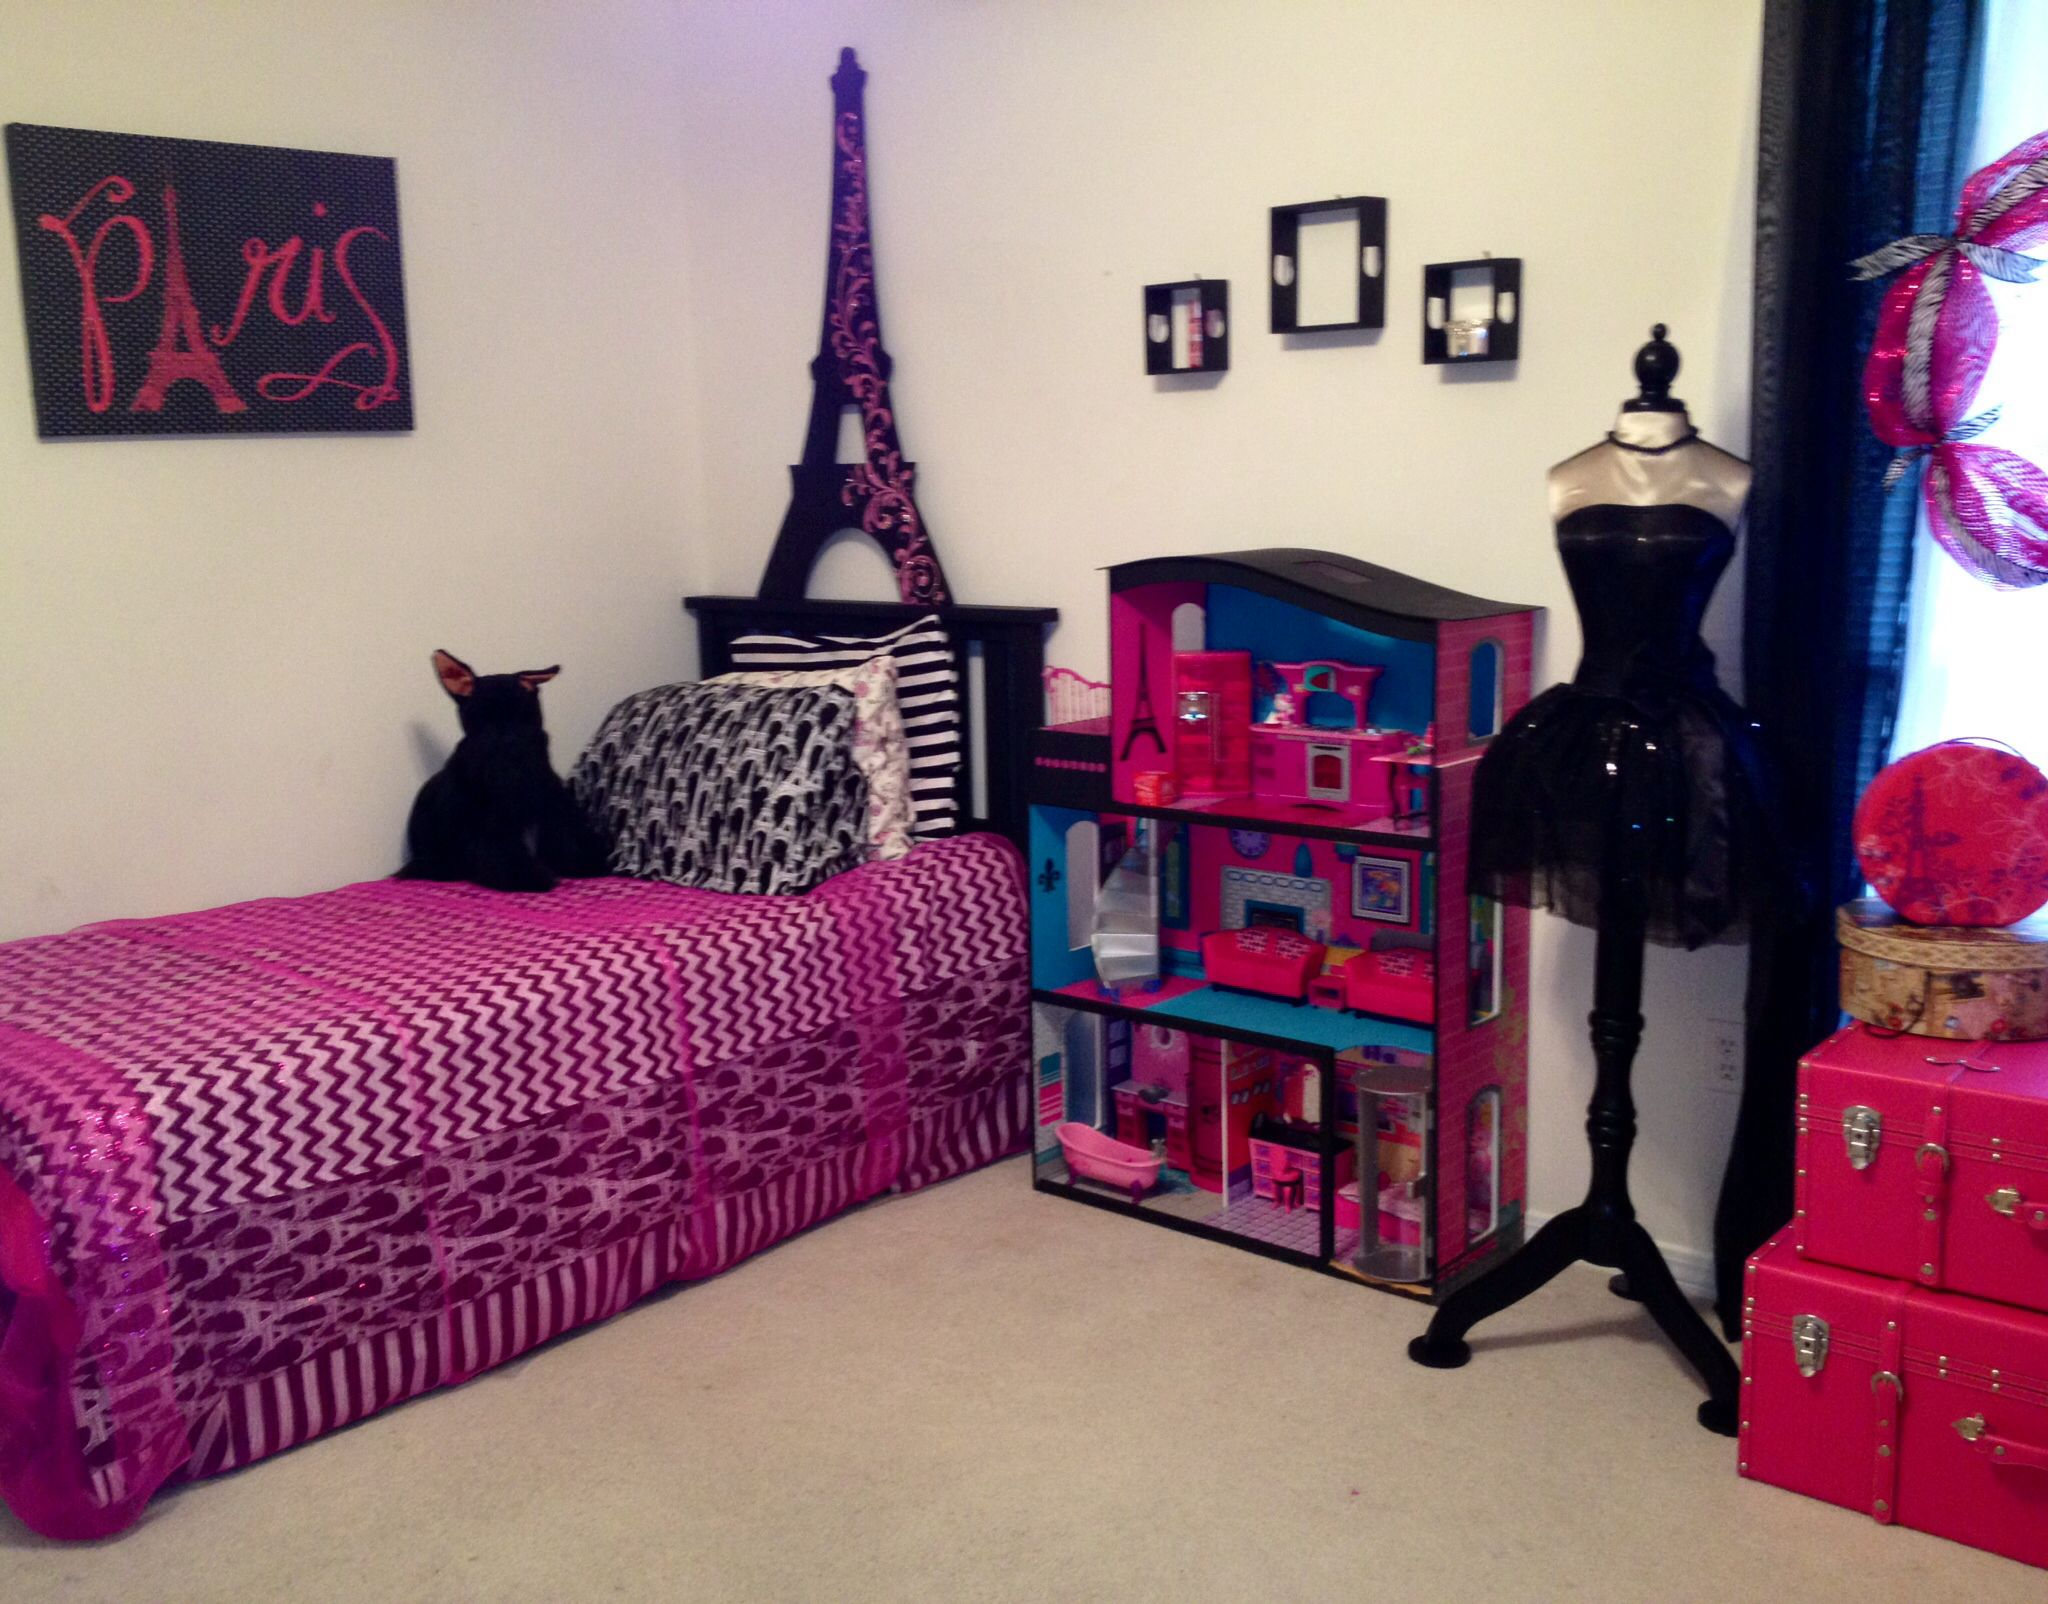 little girls bedroom to 13 year olds dream room beth